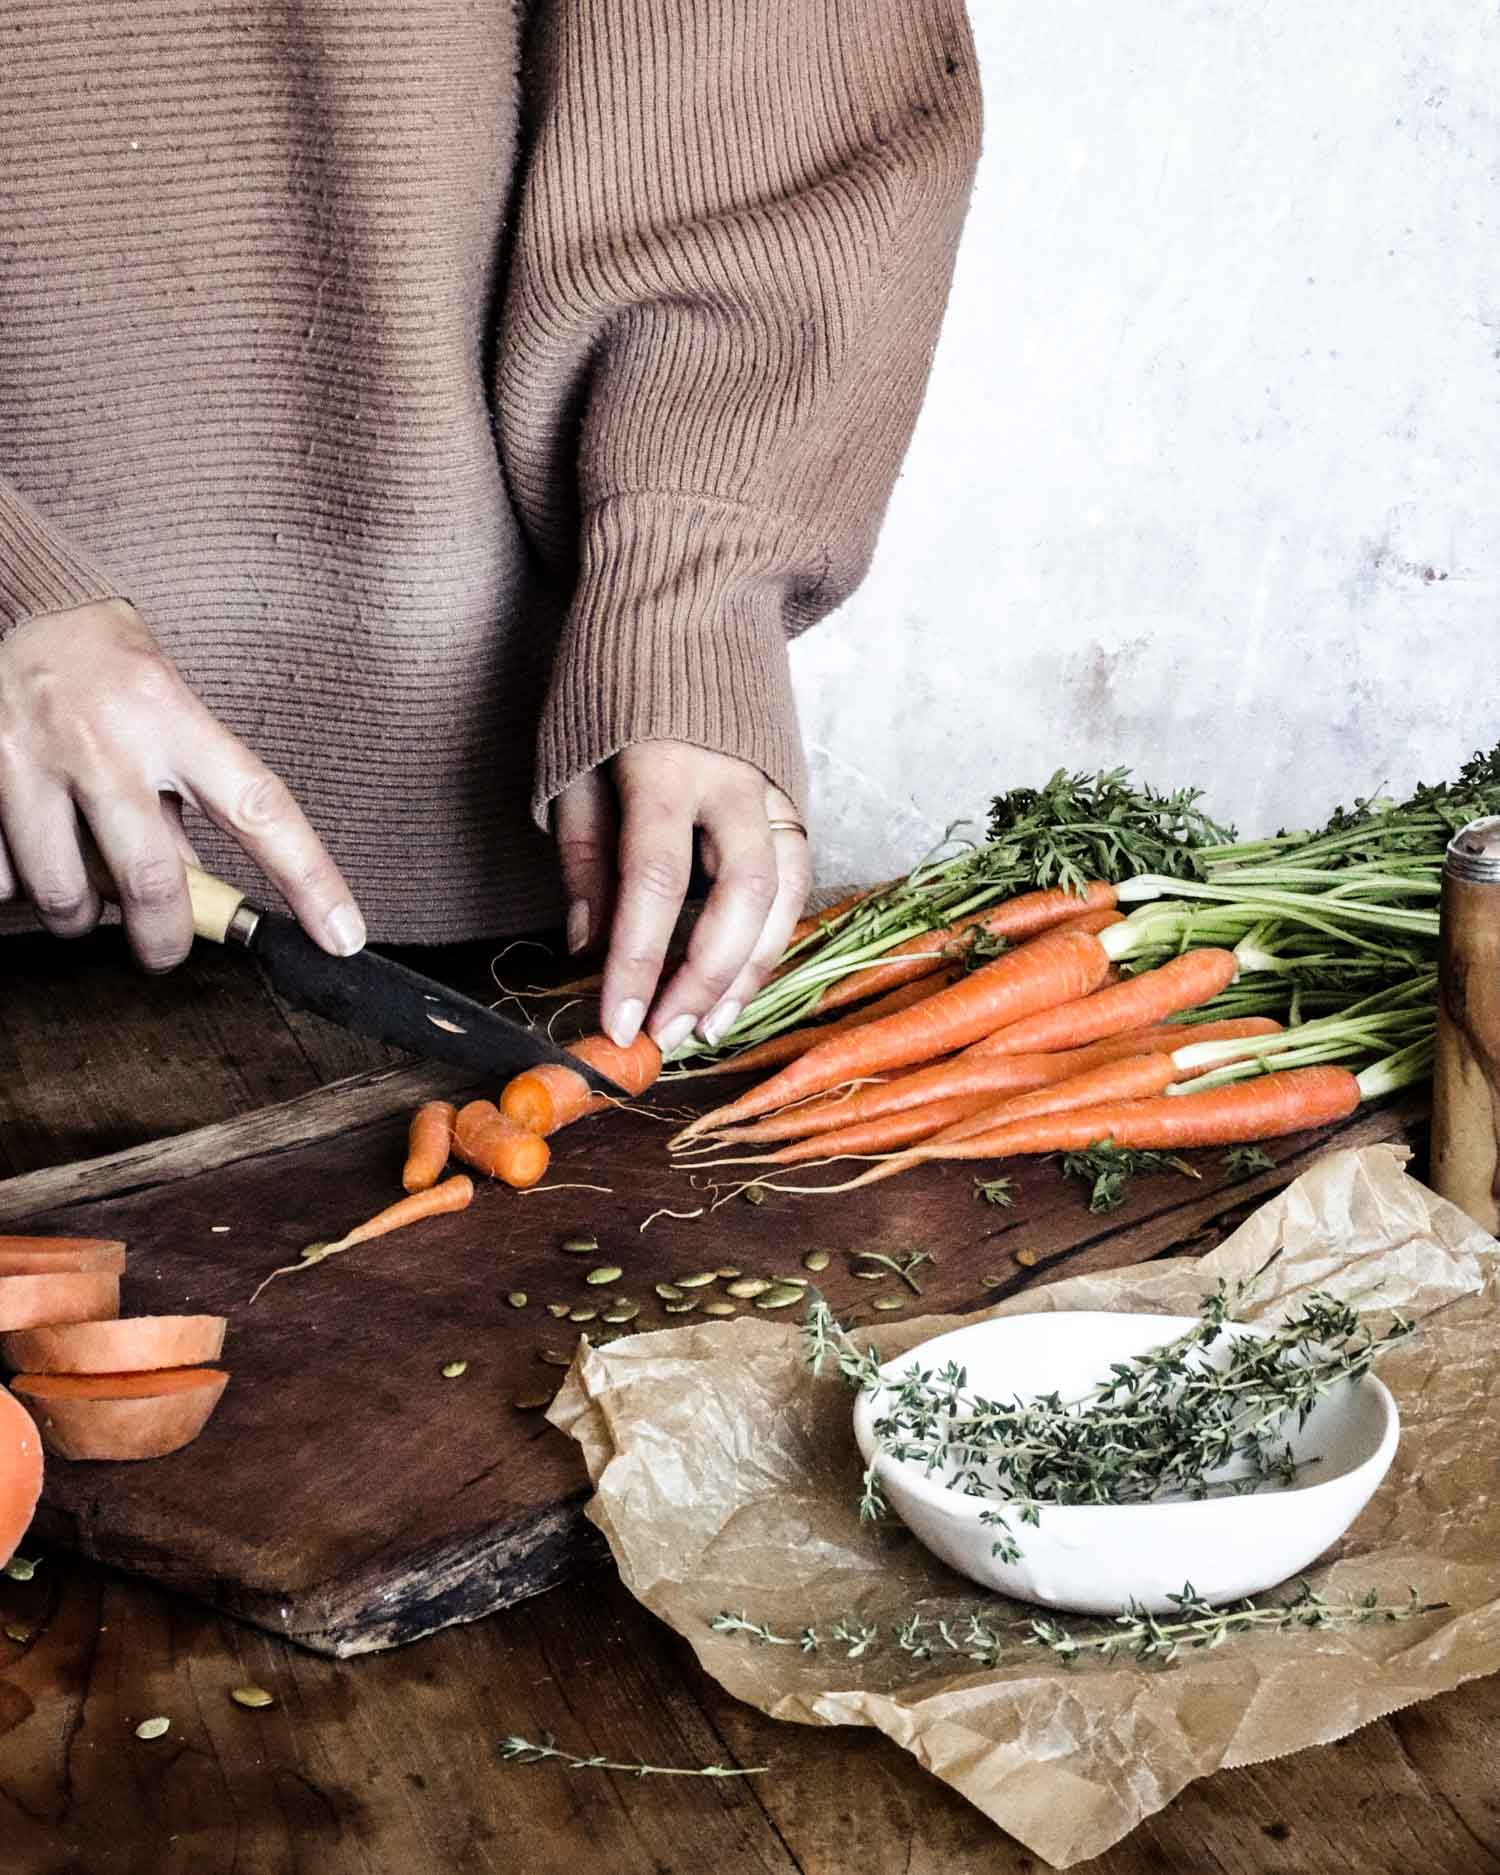 Chopping carrots for soup